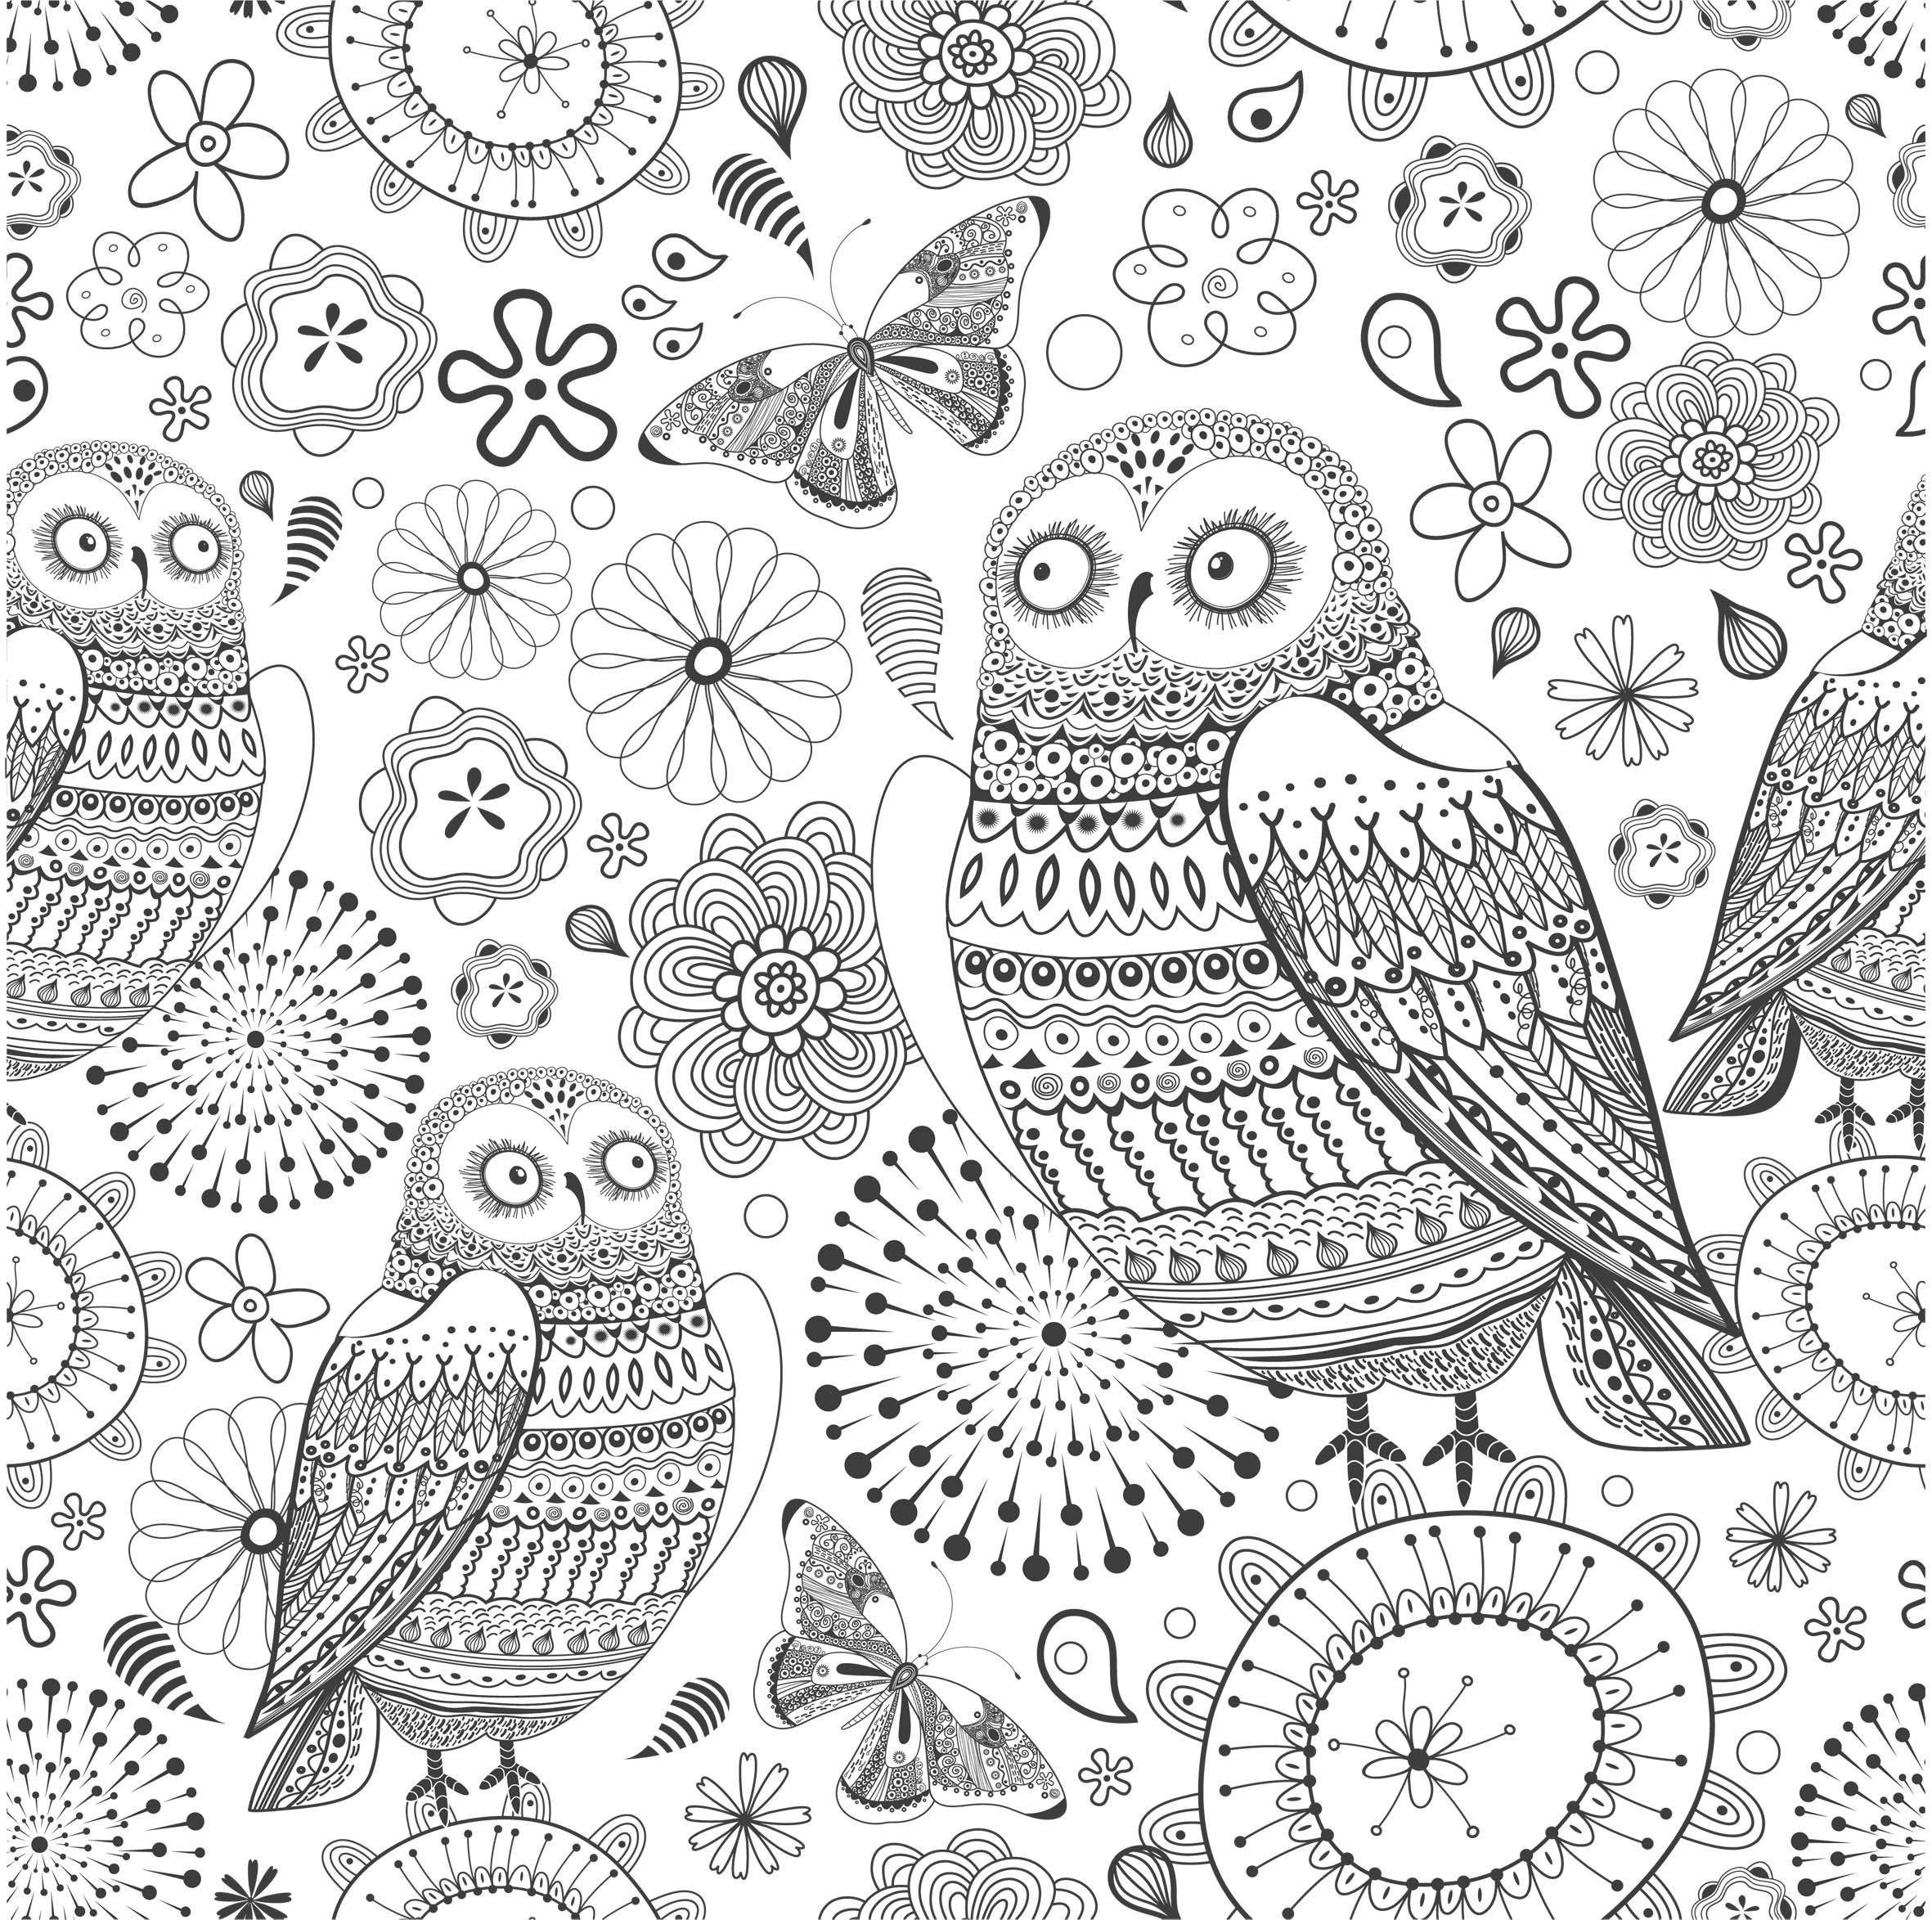 100 Coloriage Anti Stress Pdf Serapportantà Coloriage Zen Pour